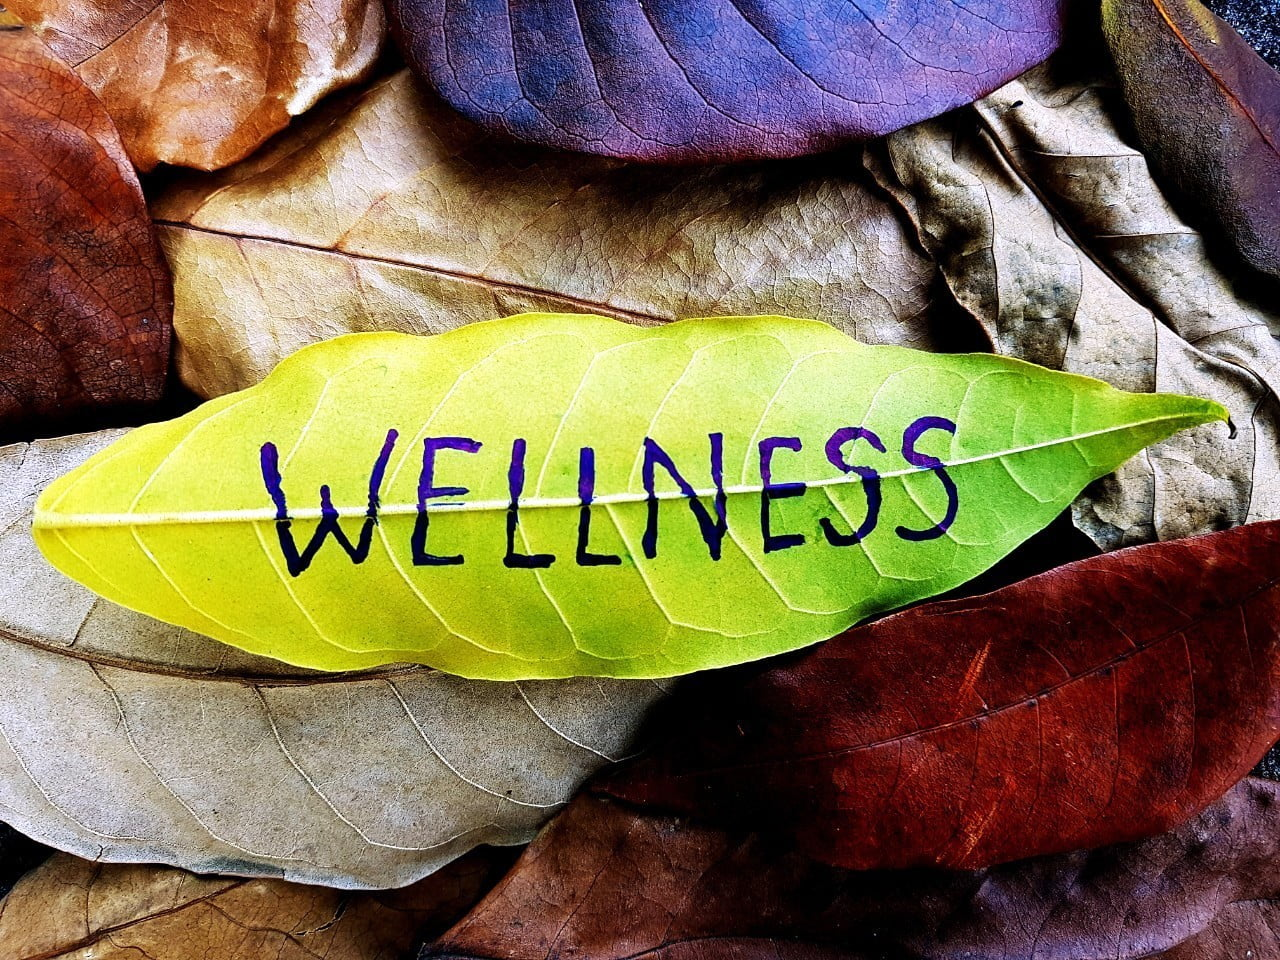 The power of prevention - invest in wellness